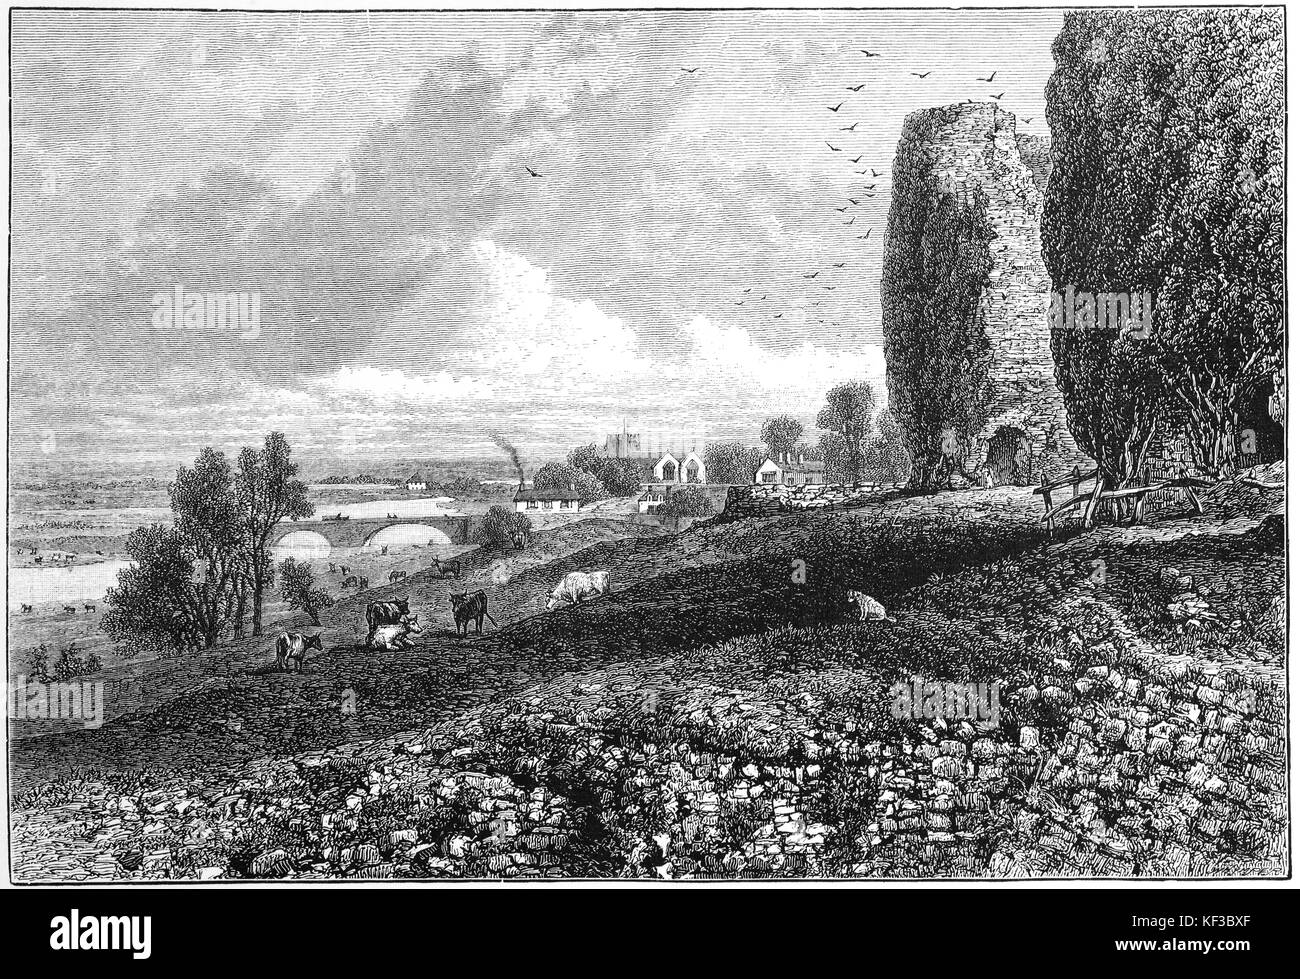 1890: Rhuddlan Castle is located above the River Clwyd in Rhuddlan, Denbighshire, Wales. It was erected by Edward - Stock Image